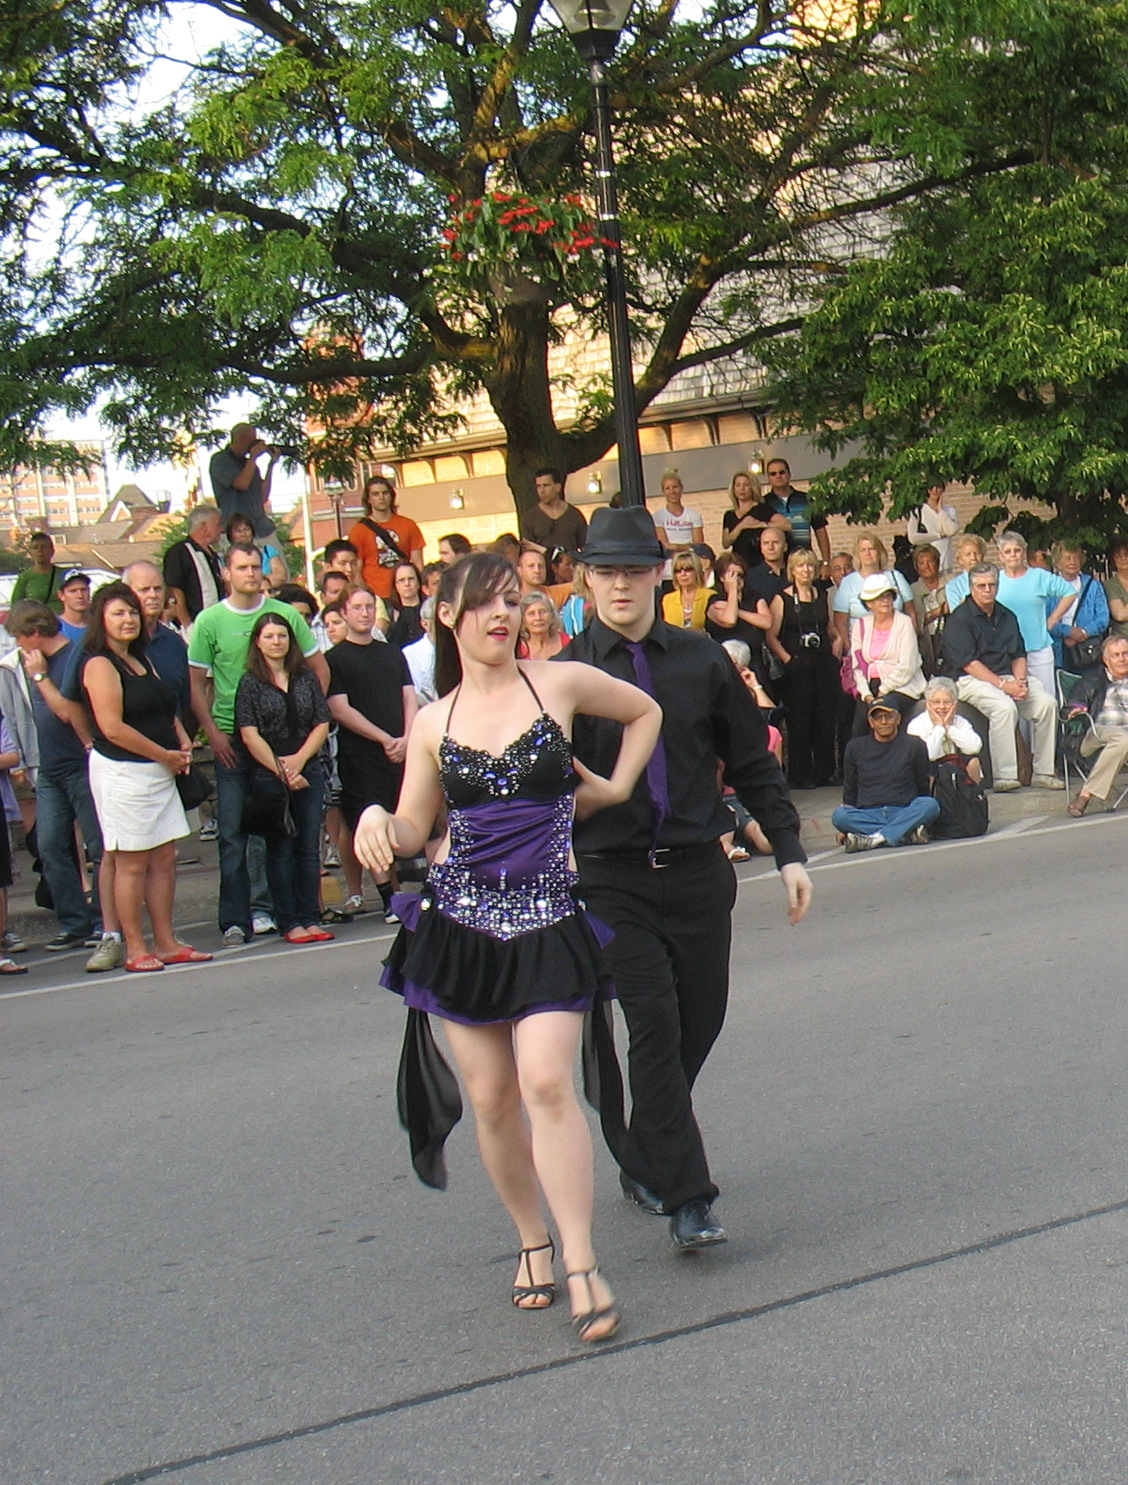 danceScape @ Burlington Sound of Music Festival – KiAnne & Kevin Full Demos (Friday)